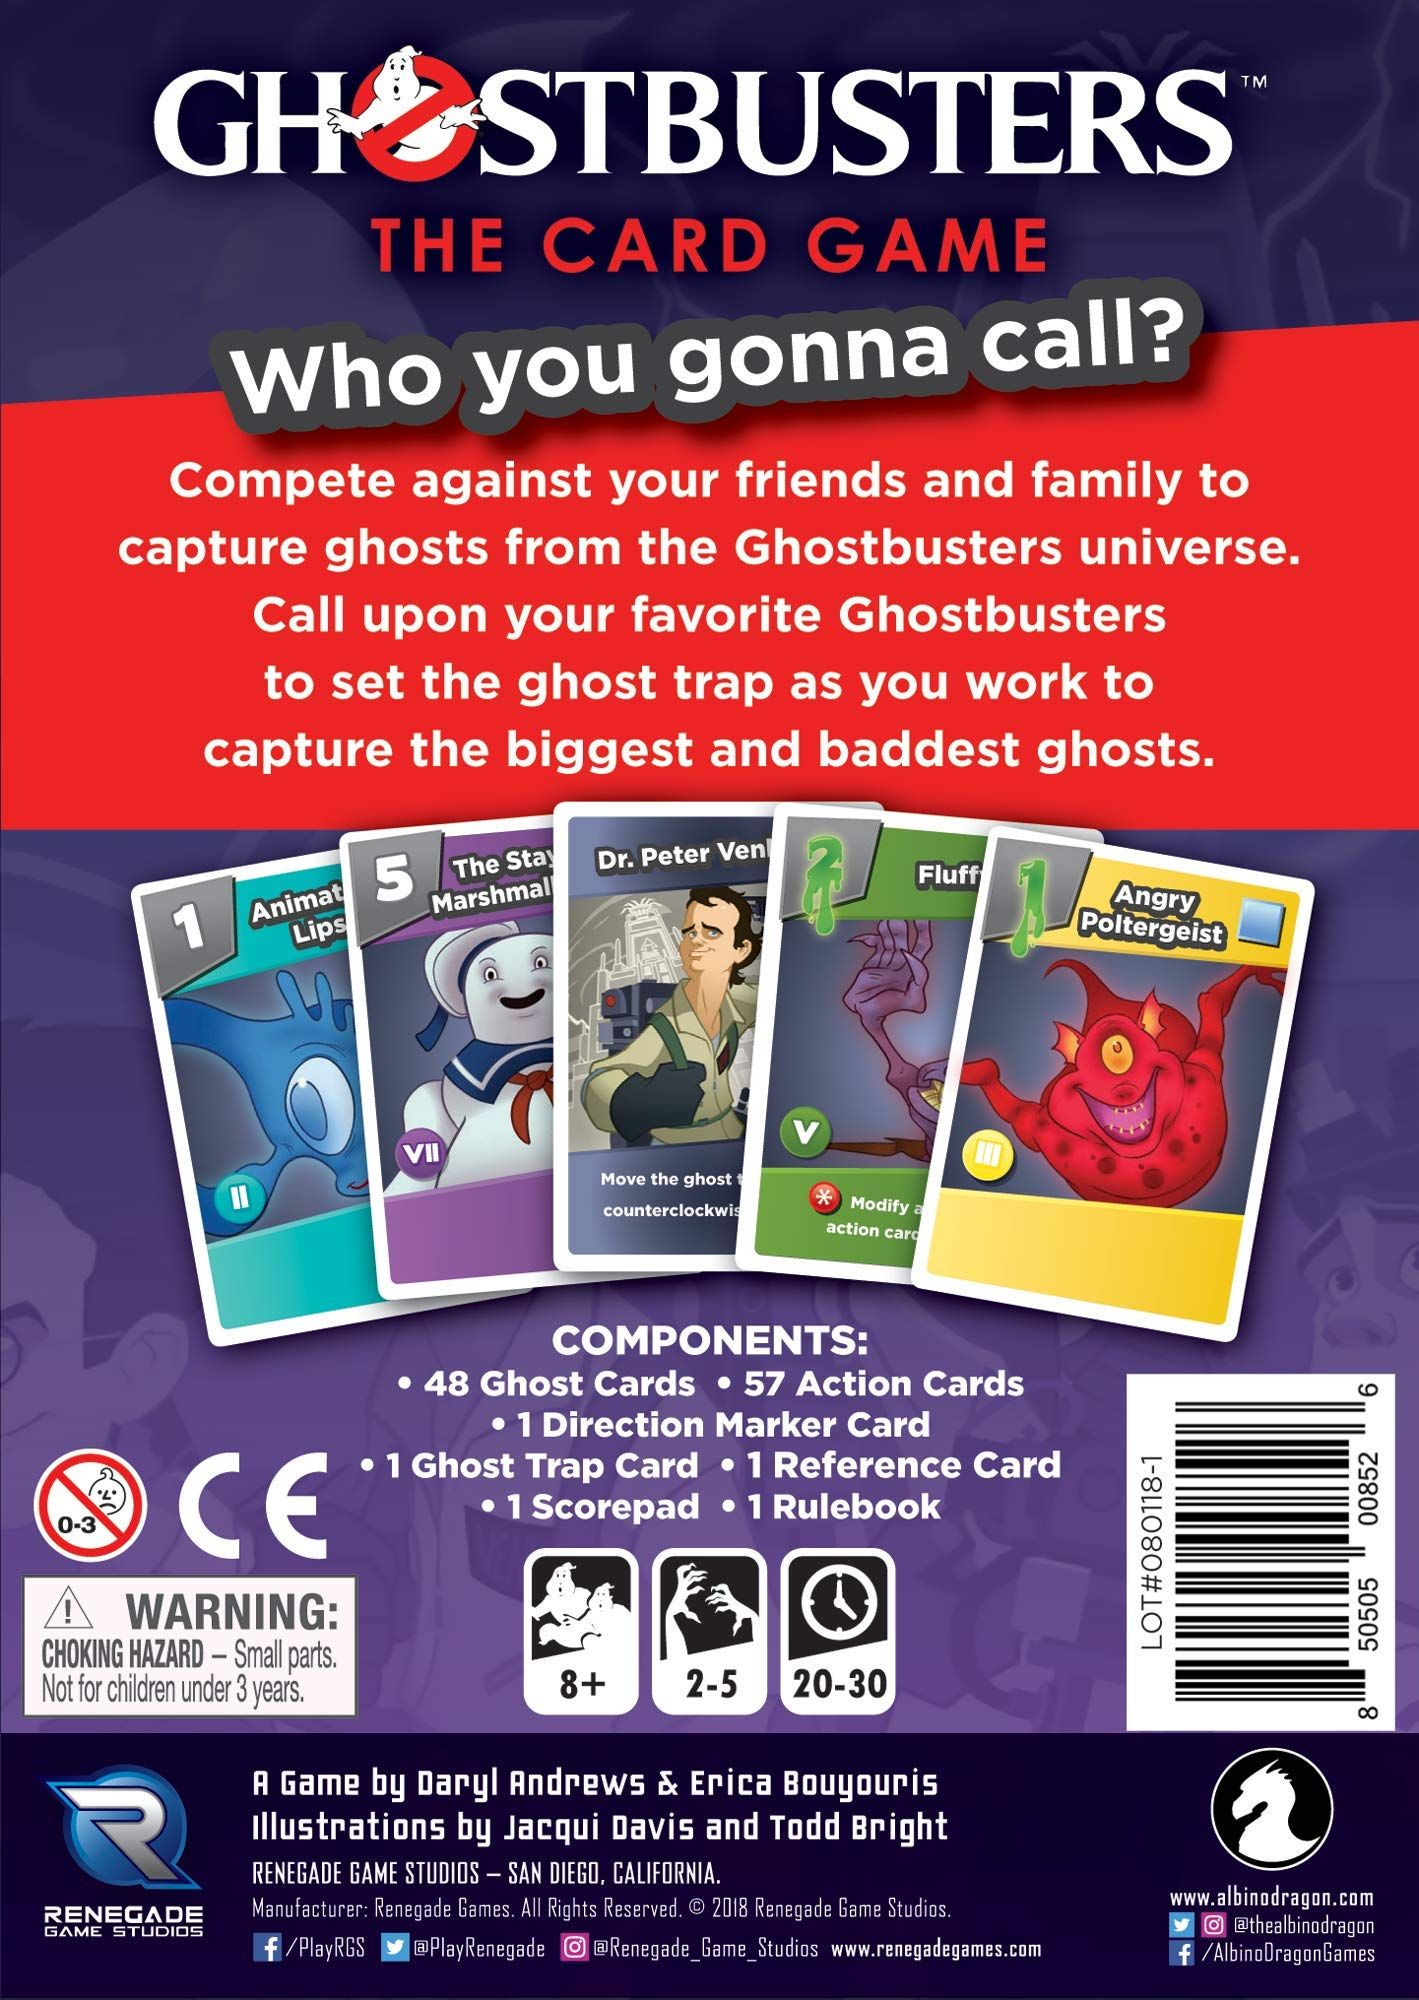 Ghostbusters%3A+The+Card+Game+%5Btrans.boxback%5D